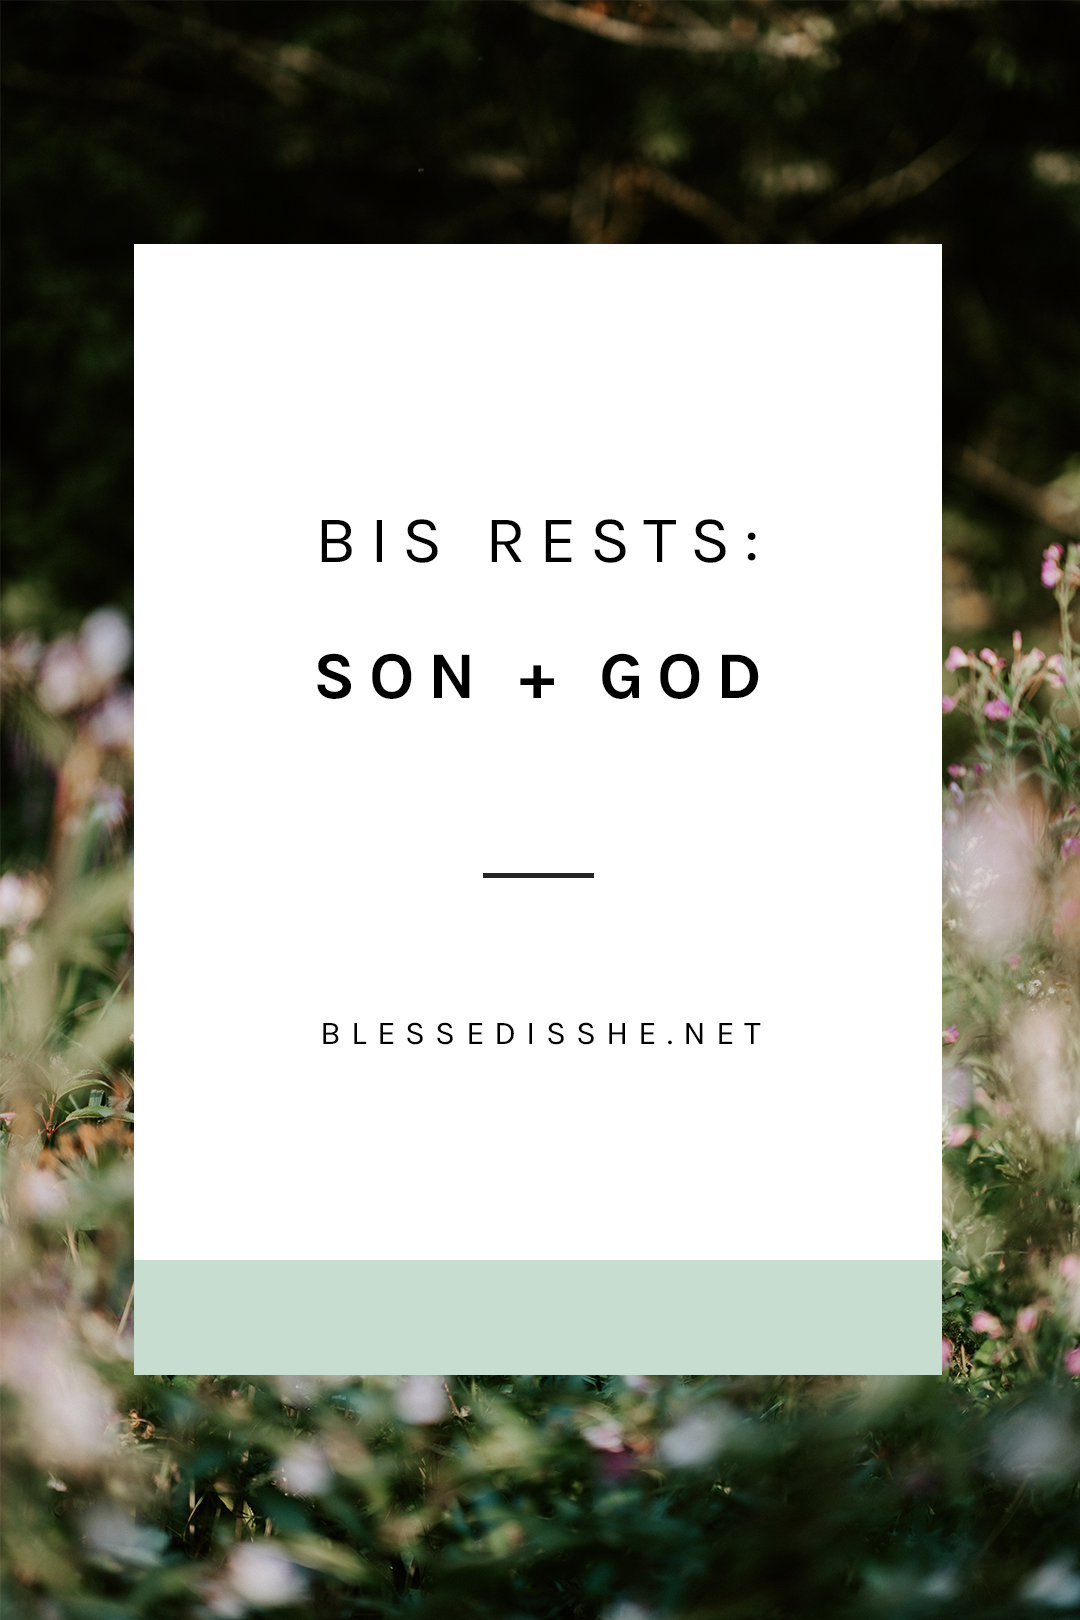 bis rests son + god